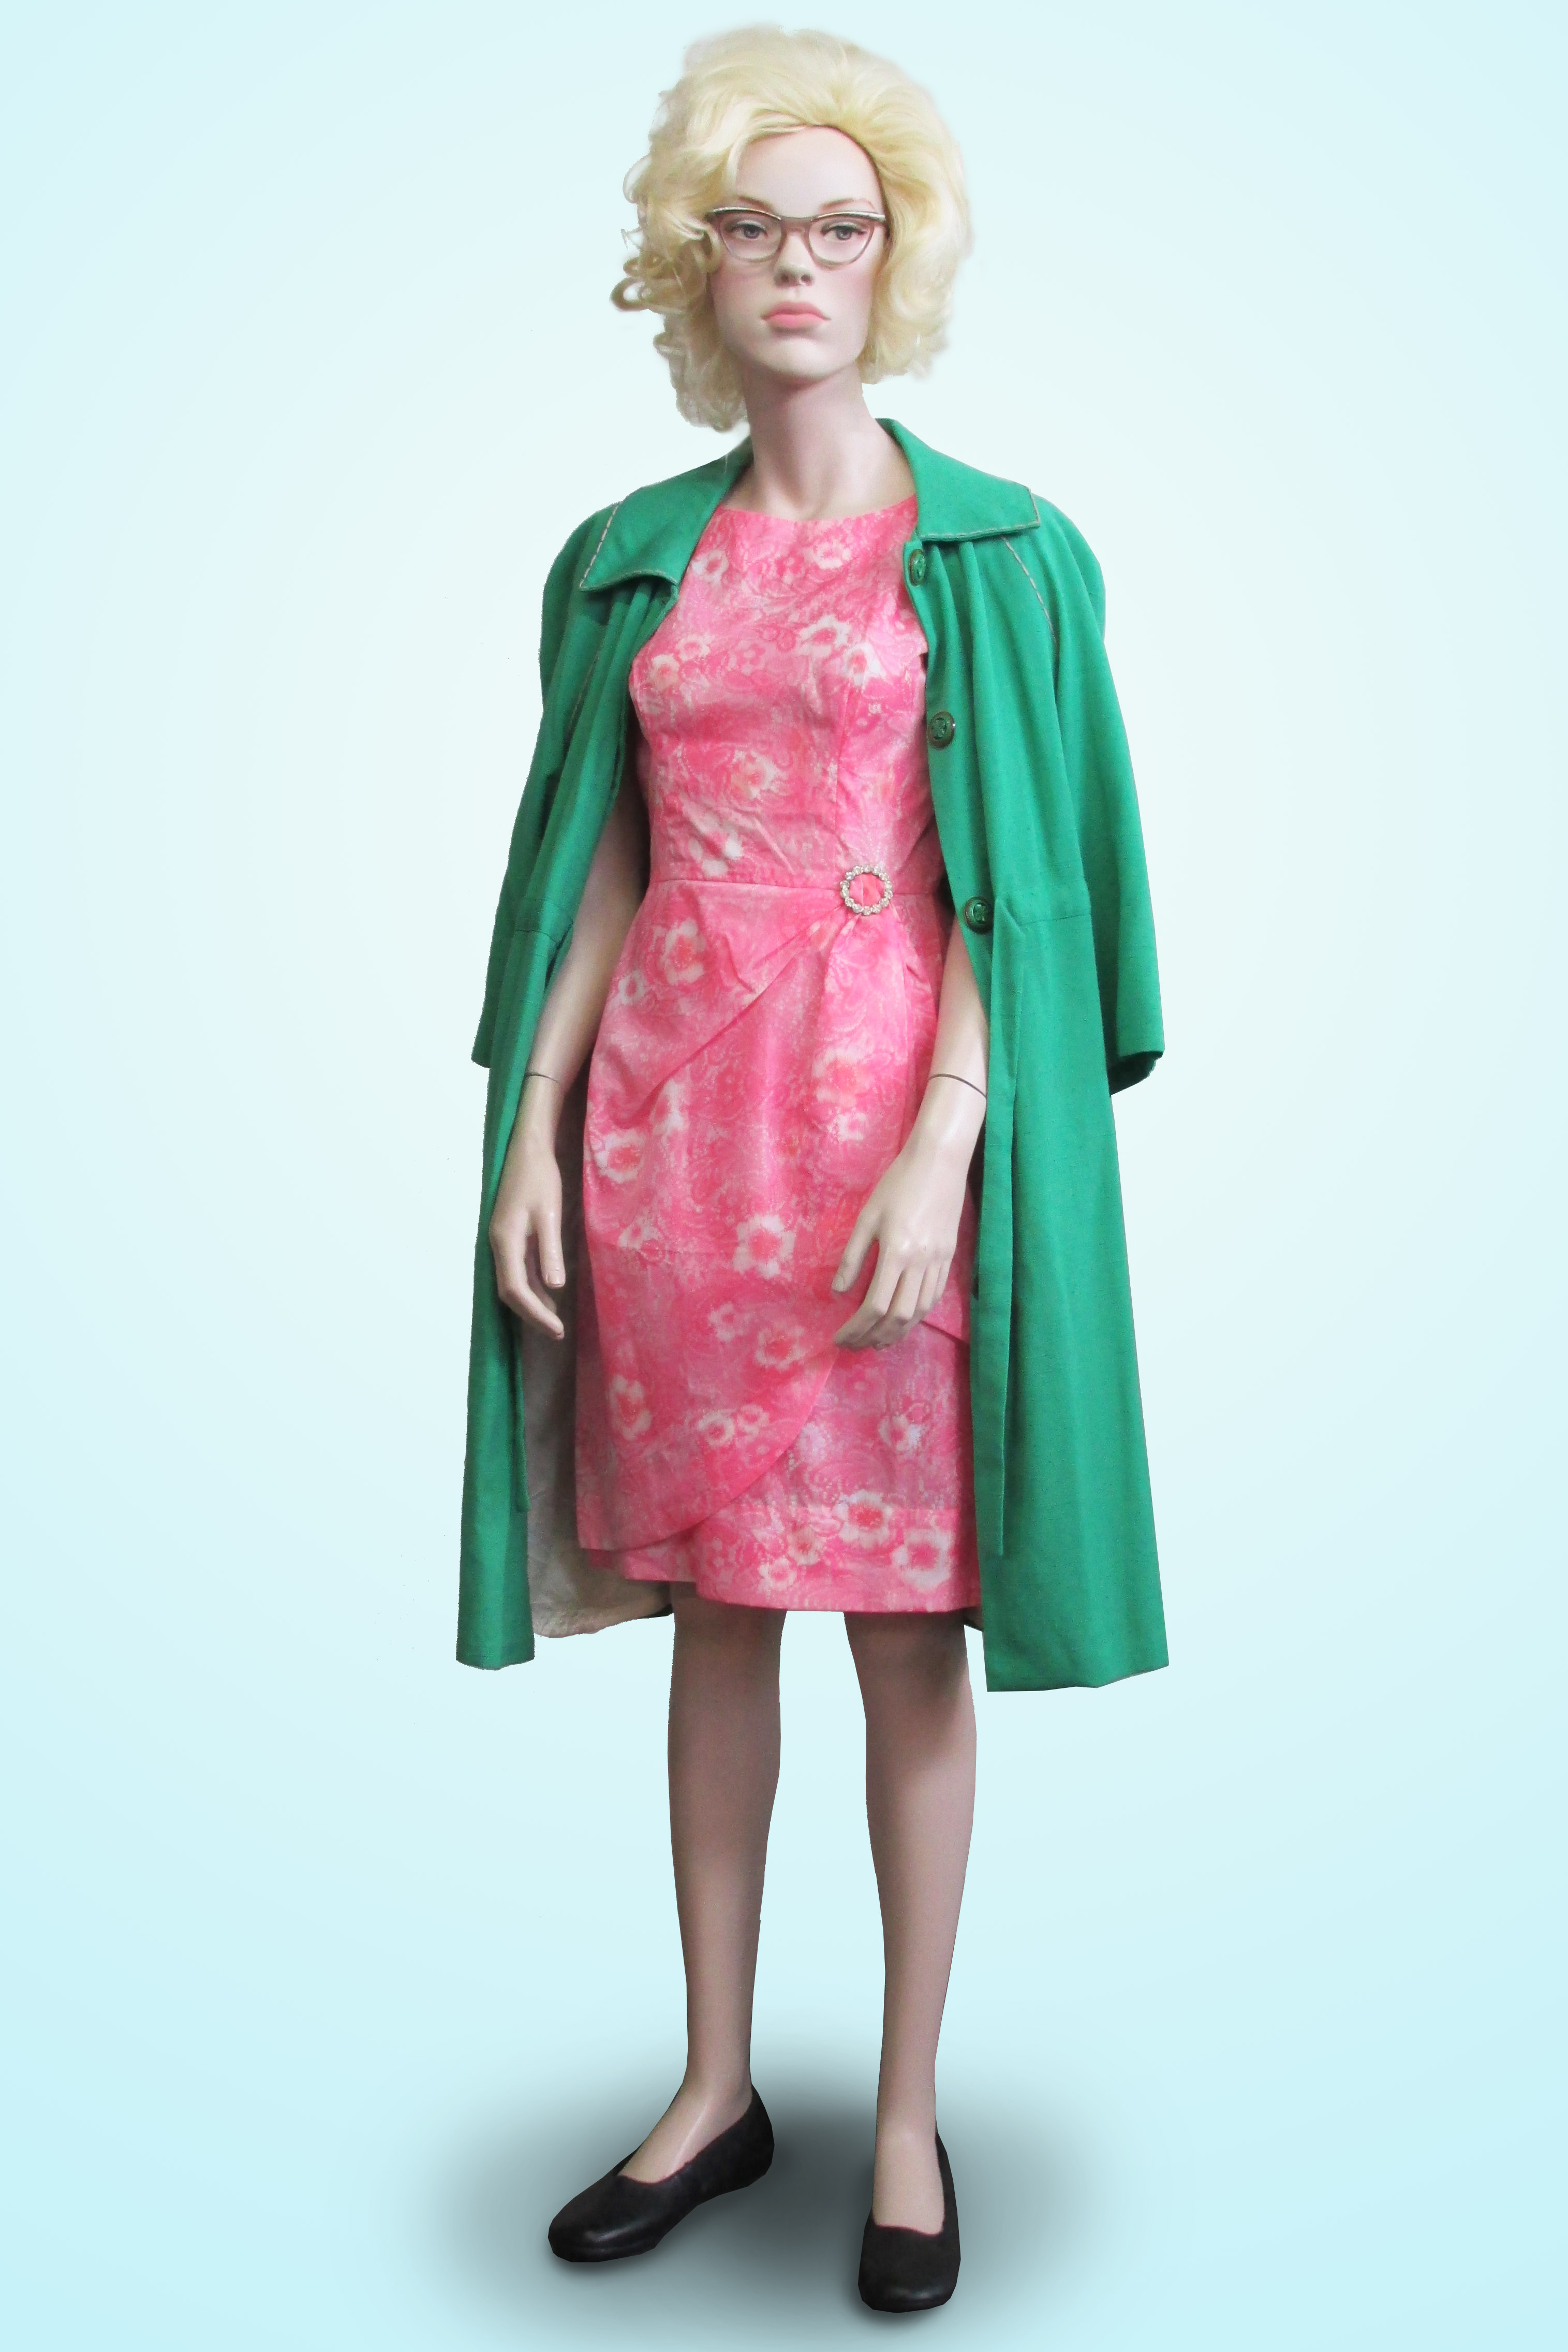 Dress Pink with Green Coat 1960s